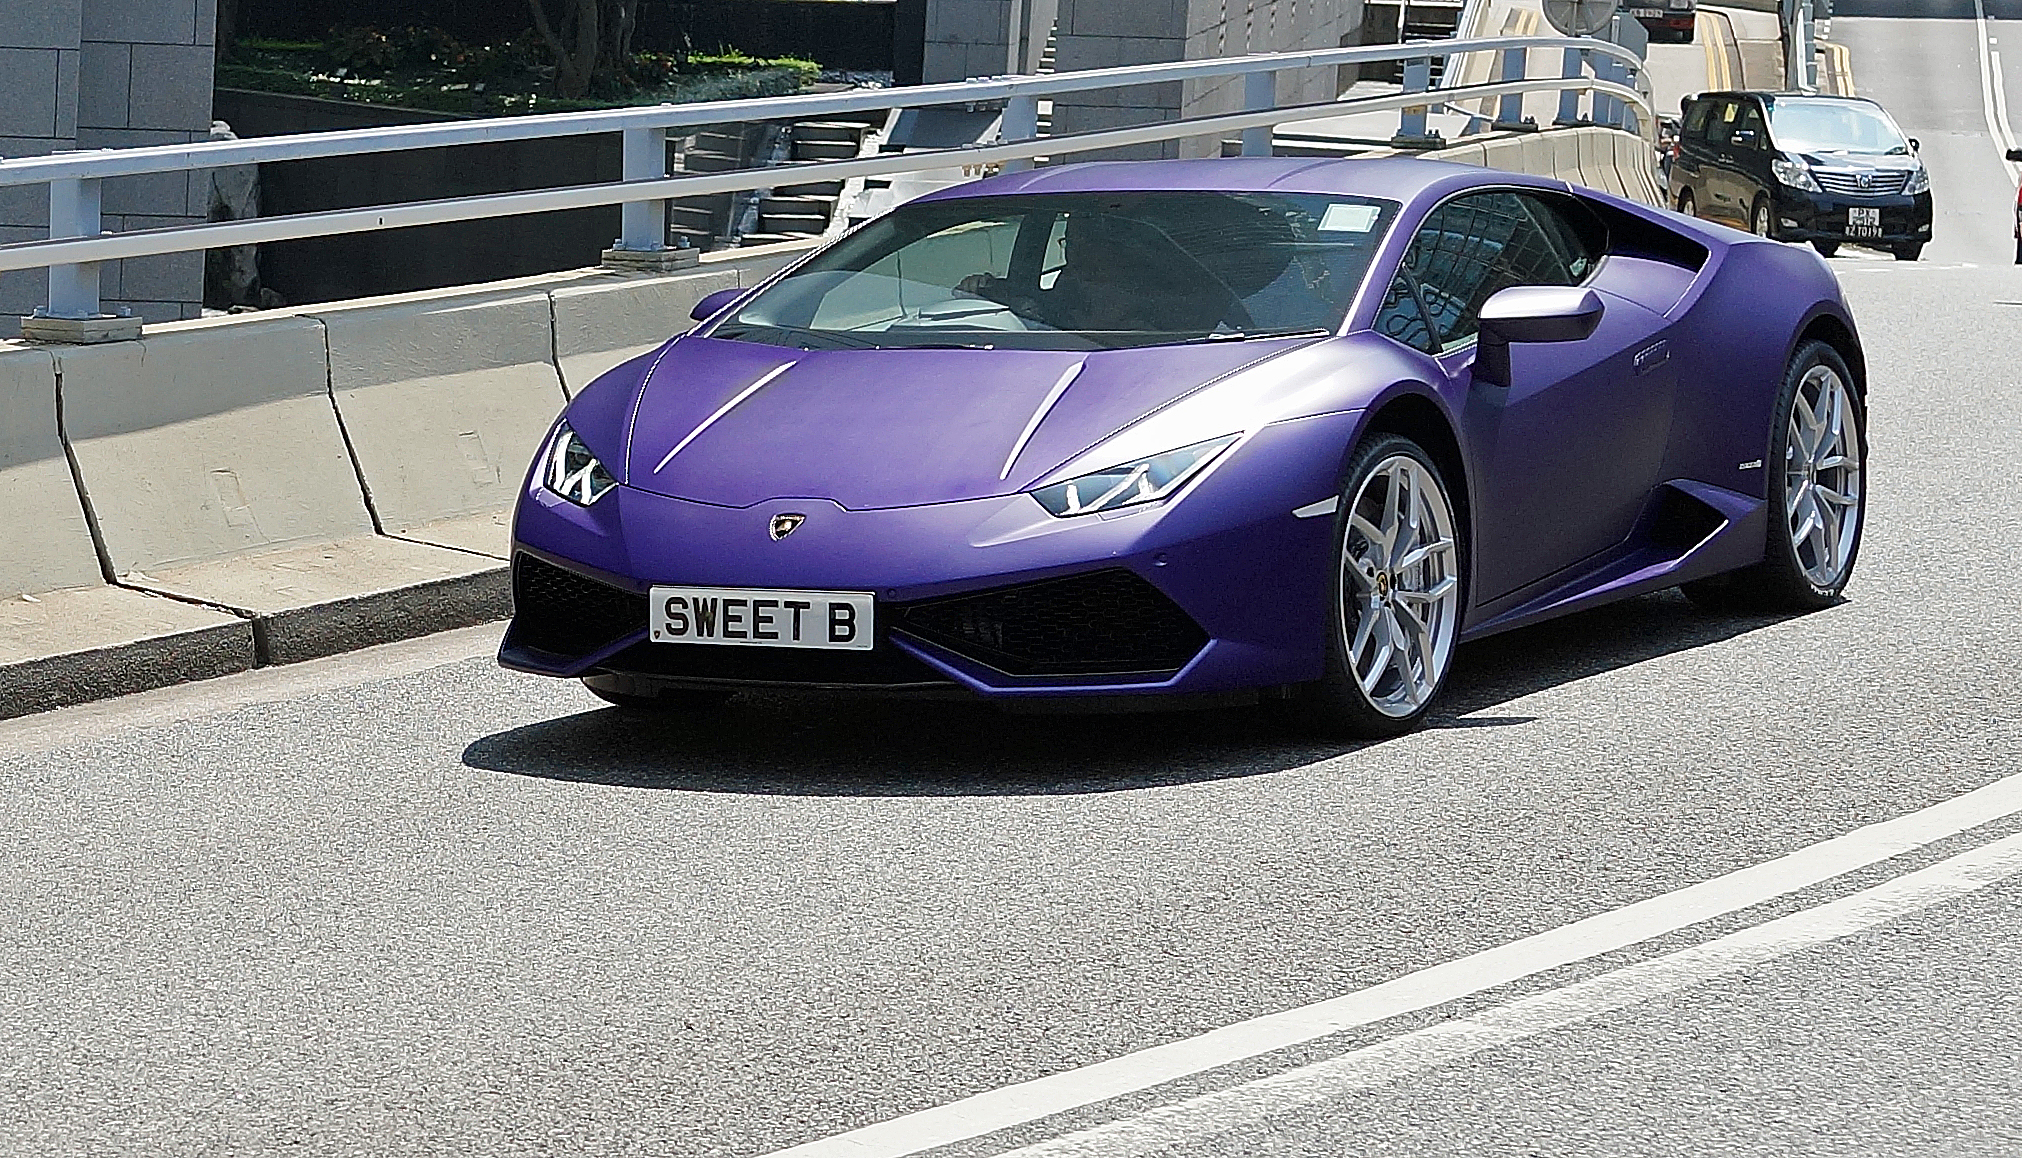 Lamborghini - SWEET B  / I am not sure about the colour but this is the new Lamborghini Huracan, the entry level model!